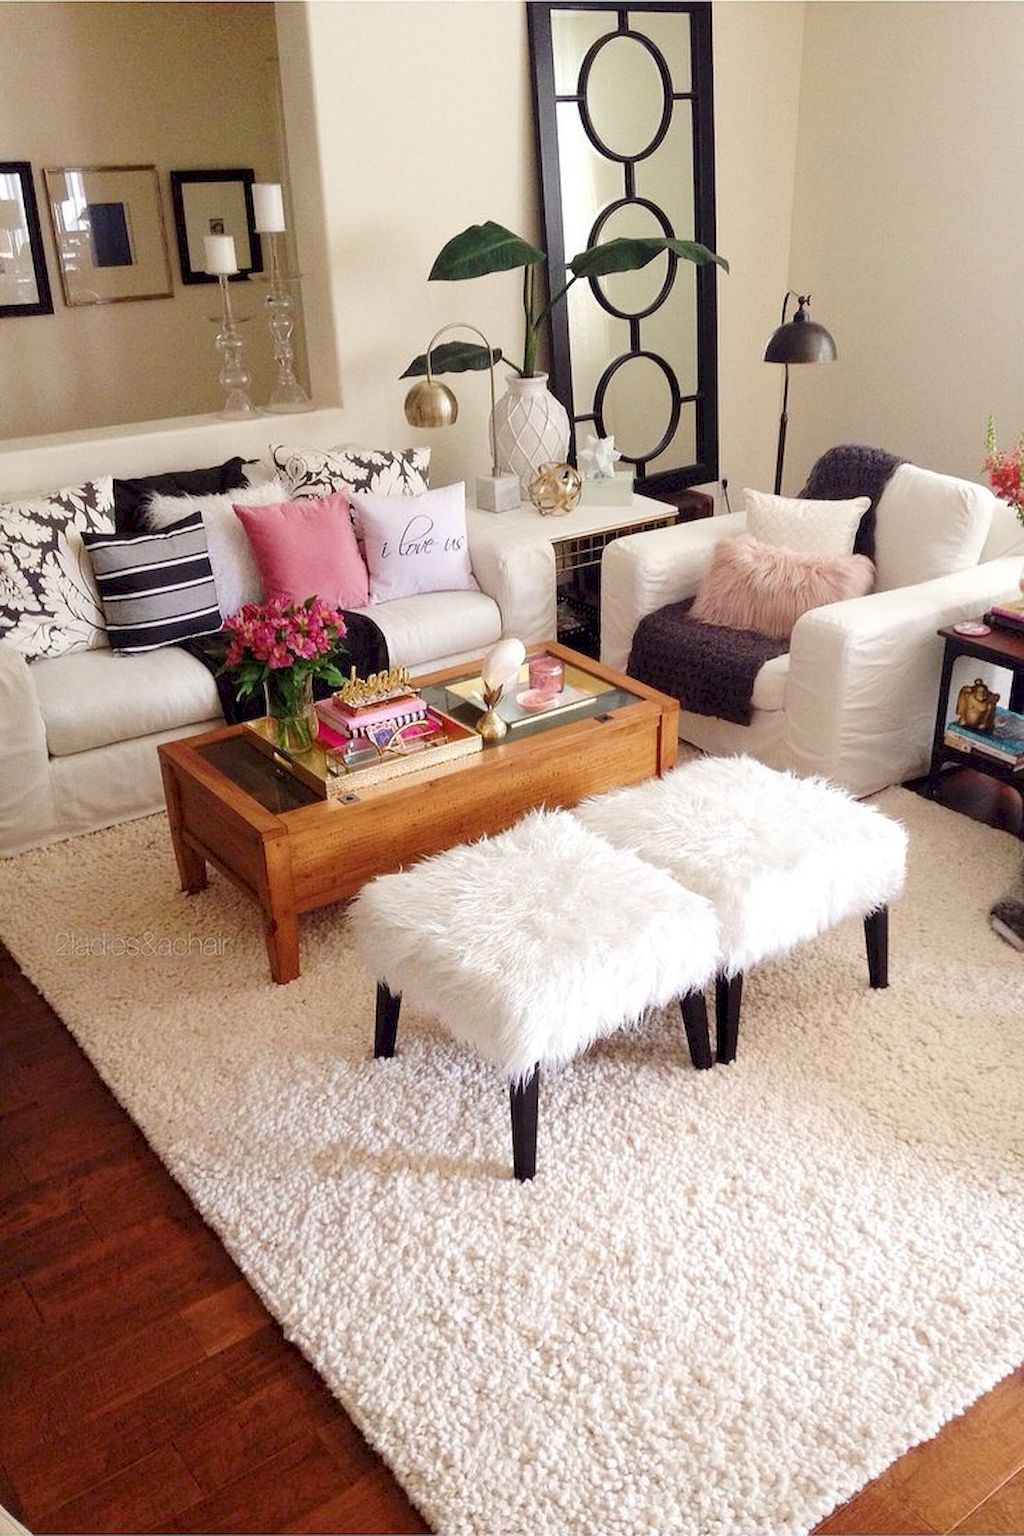 40 First Apartment Decorating Ideas On A Budget Homevialand Com College Apartment Decor Apartment Decorating Rental Apartment Decorating Rental Budget